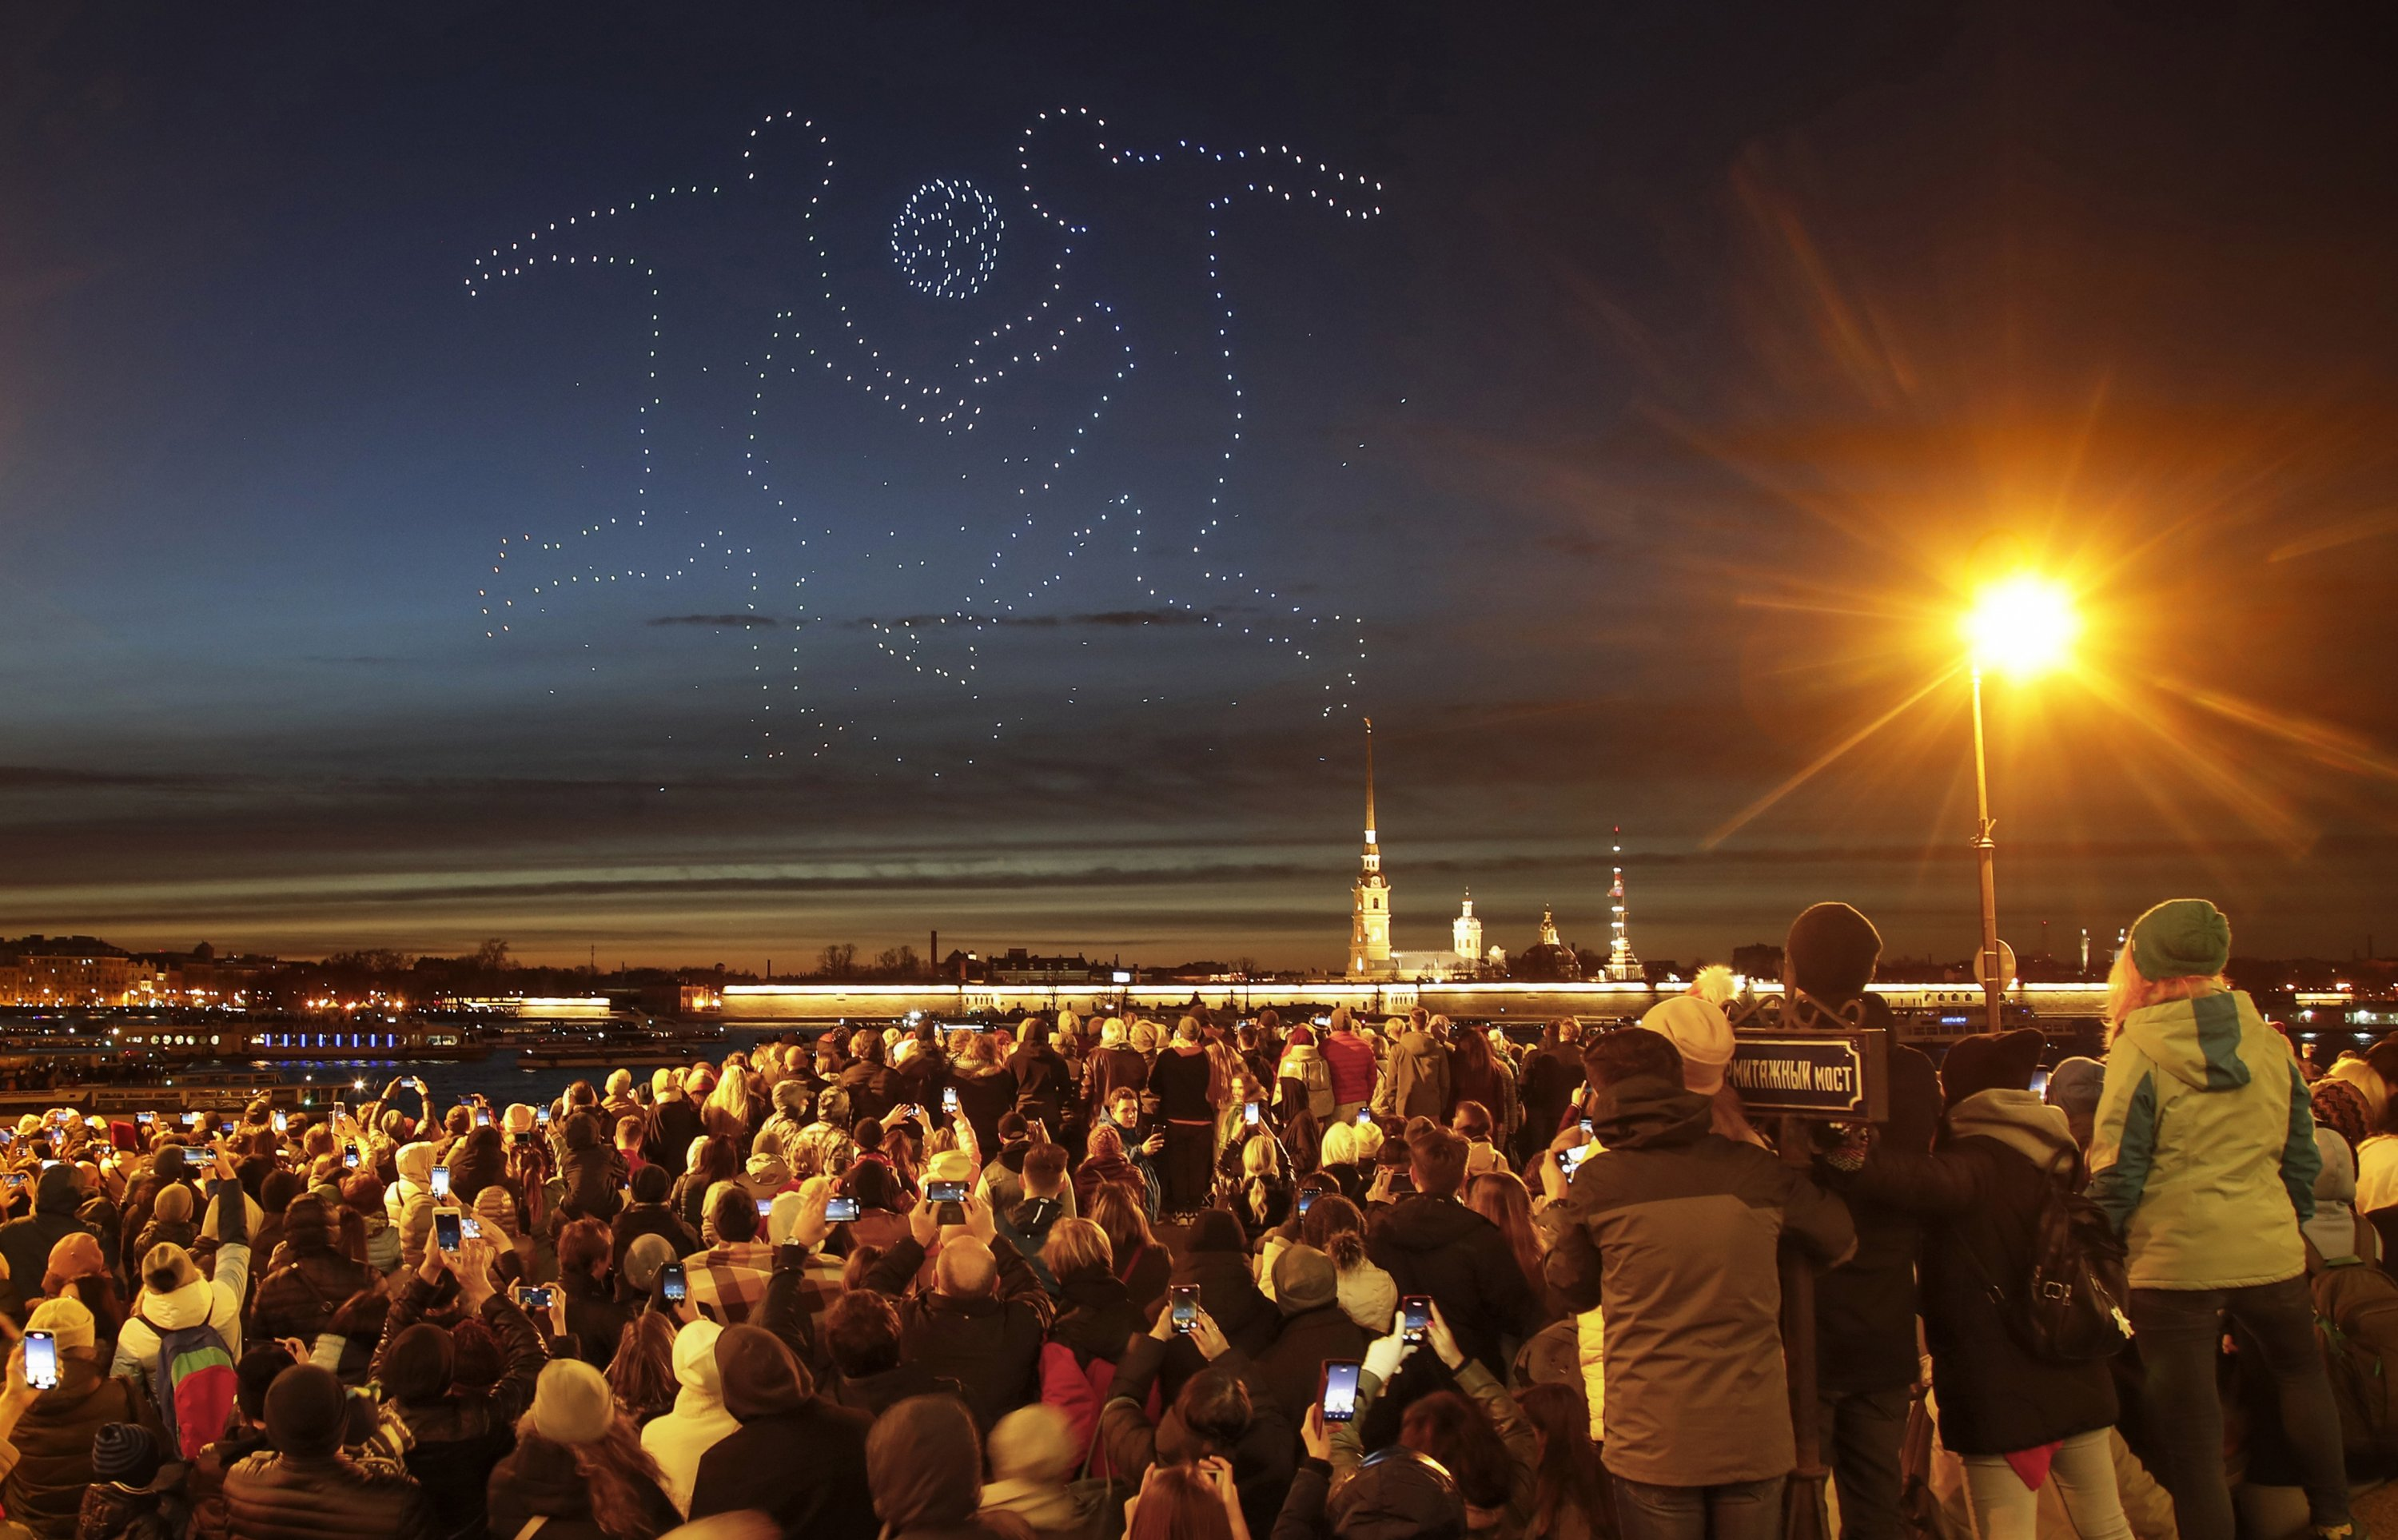 People watch glowing drones depicting soccer players during a drone show over the Saints Peter and Paul Cathedral in St. Petersburg, Russia, May 2, 2021. St. Petersburg will host seven postponed UEFA EURO 2020 matches, including a quarterfinal. (AP Photo)